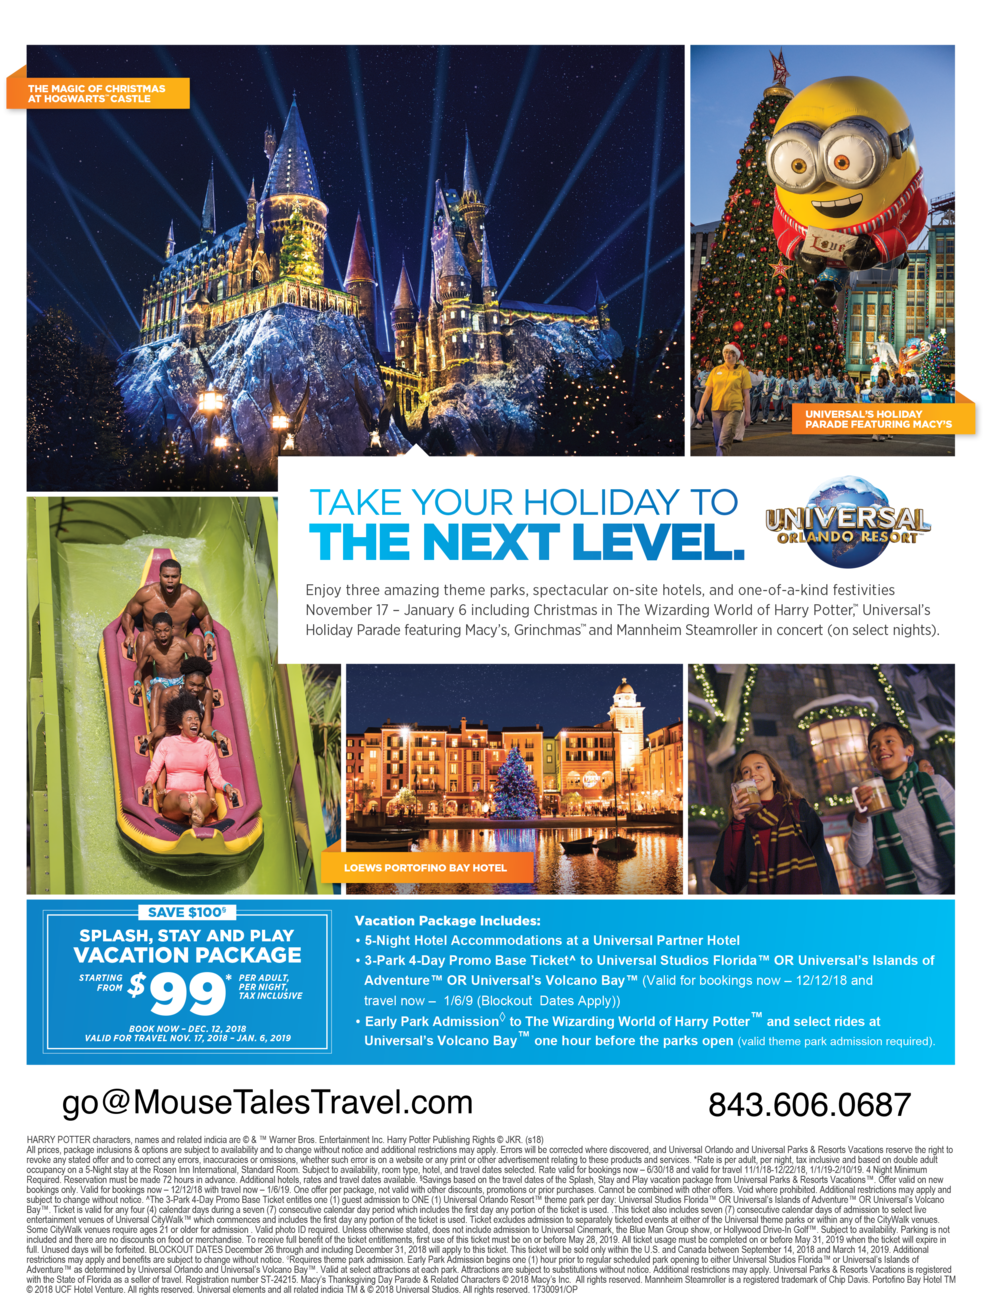 Universal's Splash, Play and Stay vacation package